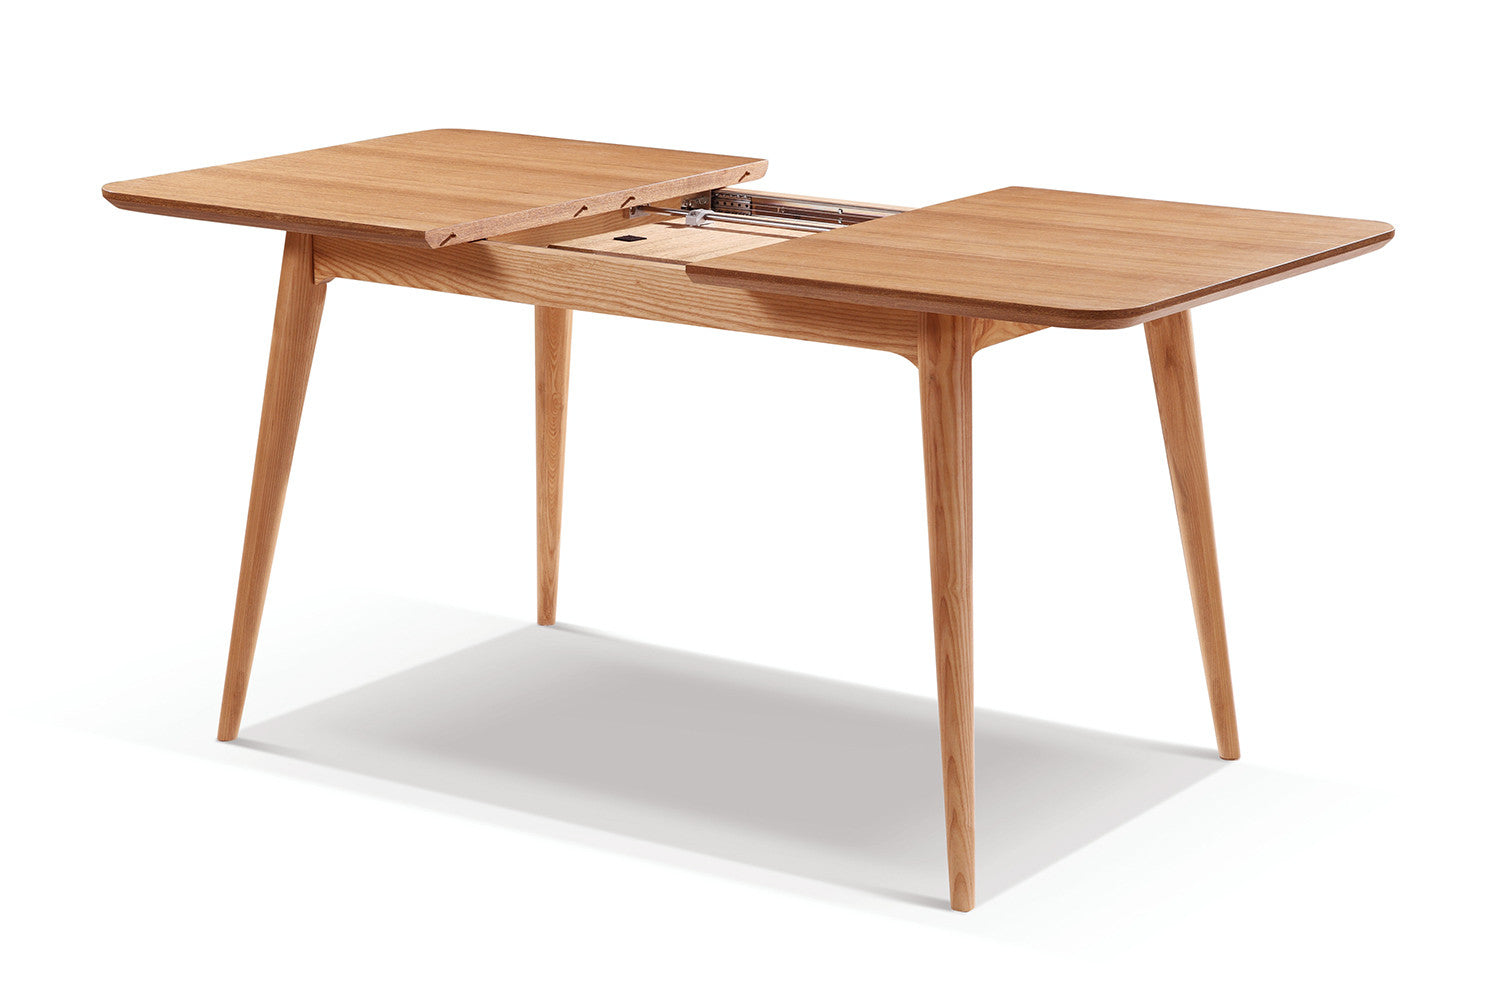 Table de salle manger extensible en bois adda dewarens for Table de salle a manger dimension